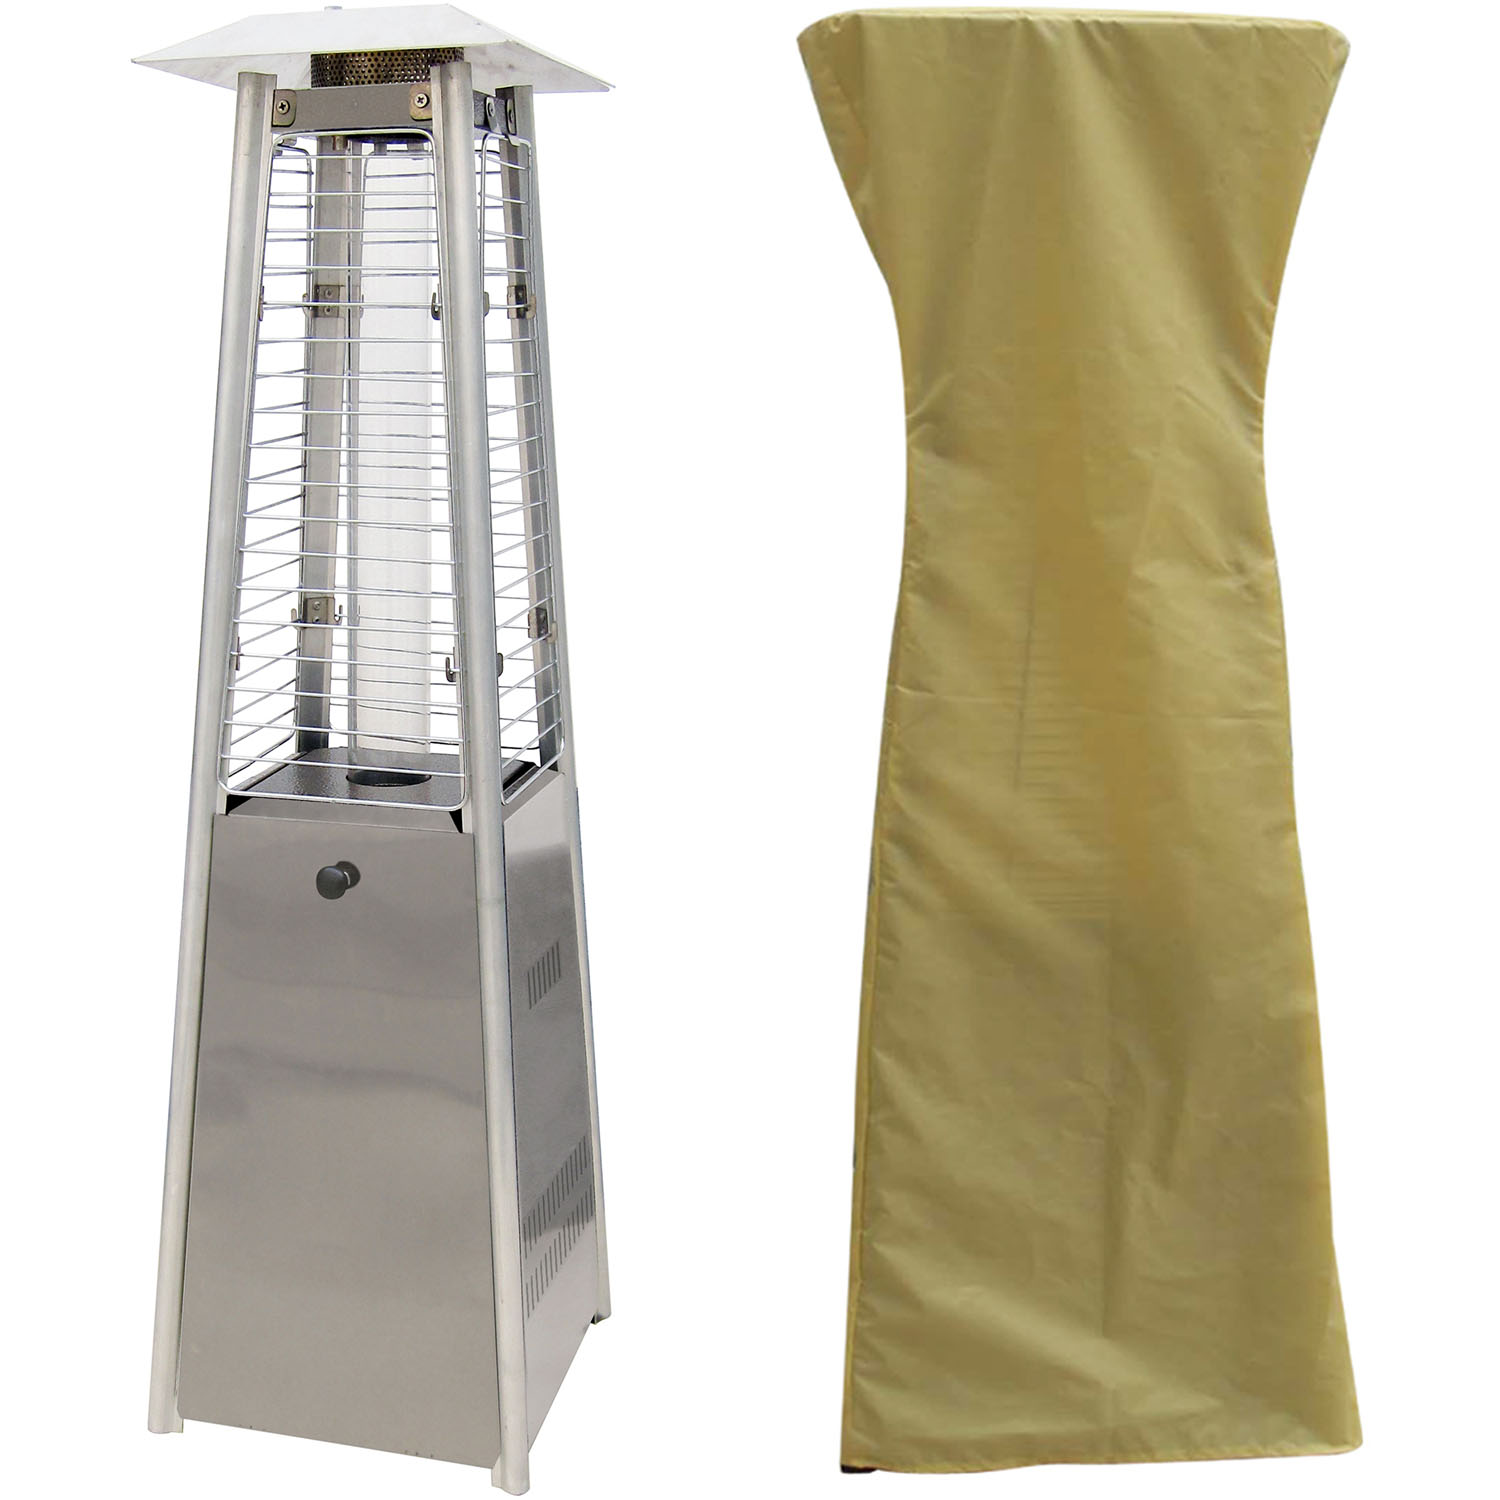 Hanover Mini Pyramid Tabletop Propane Patio Heater in Stainless Steel with Weather-Protective Cover